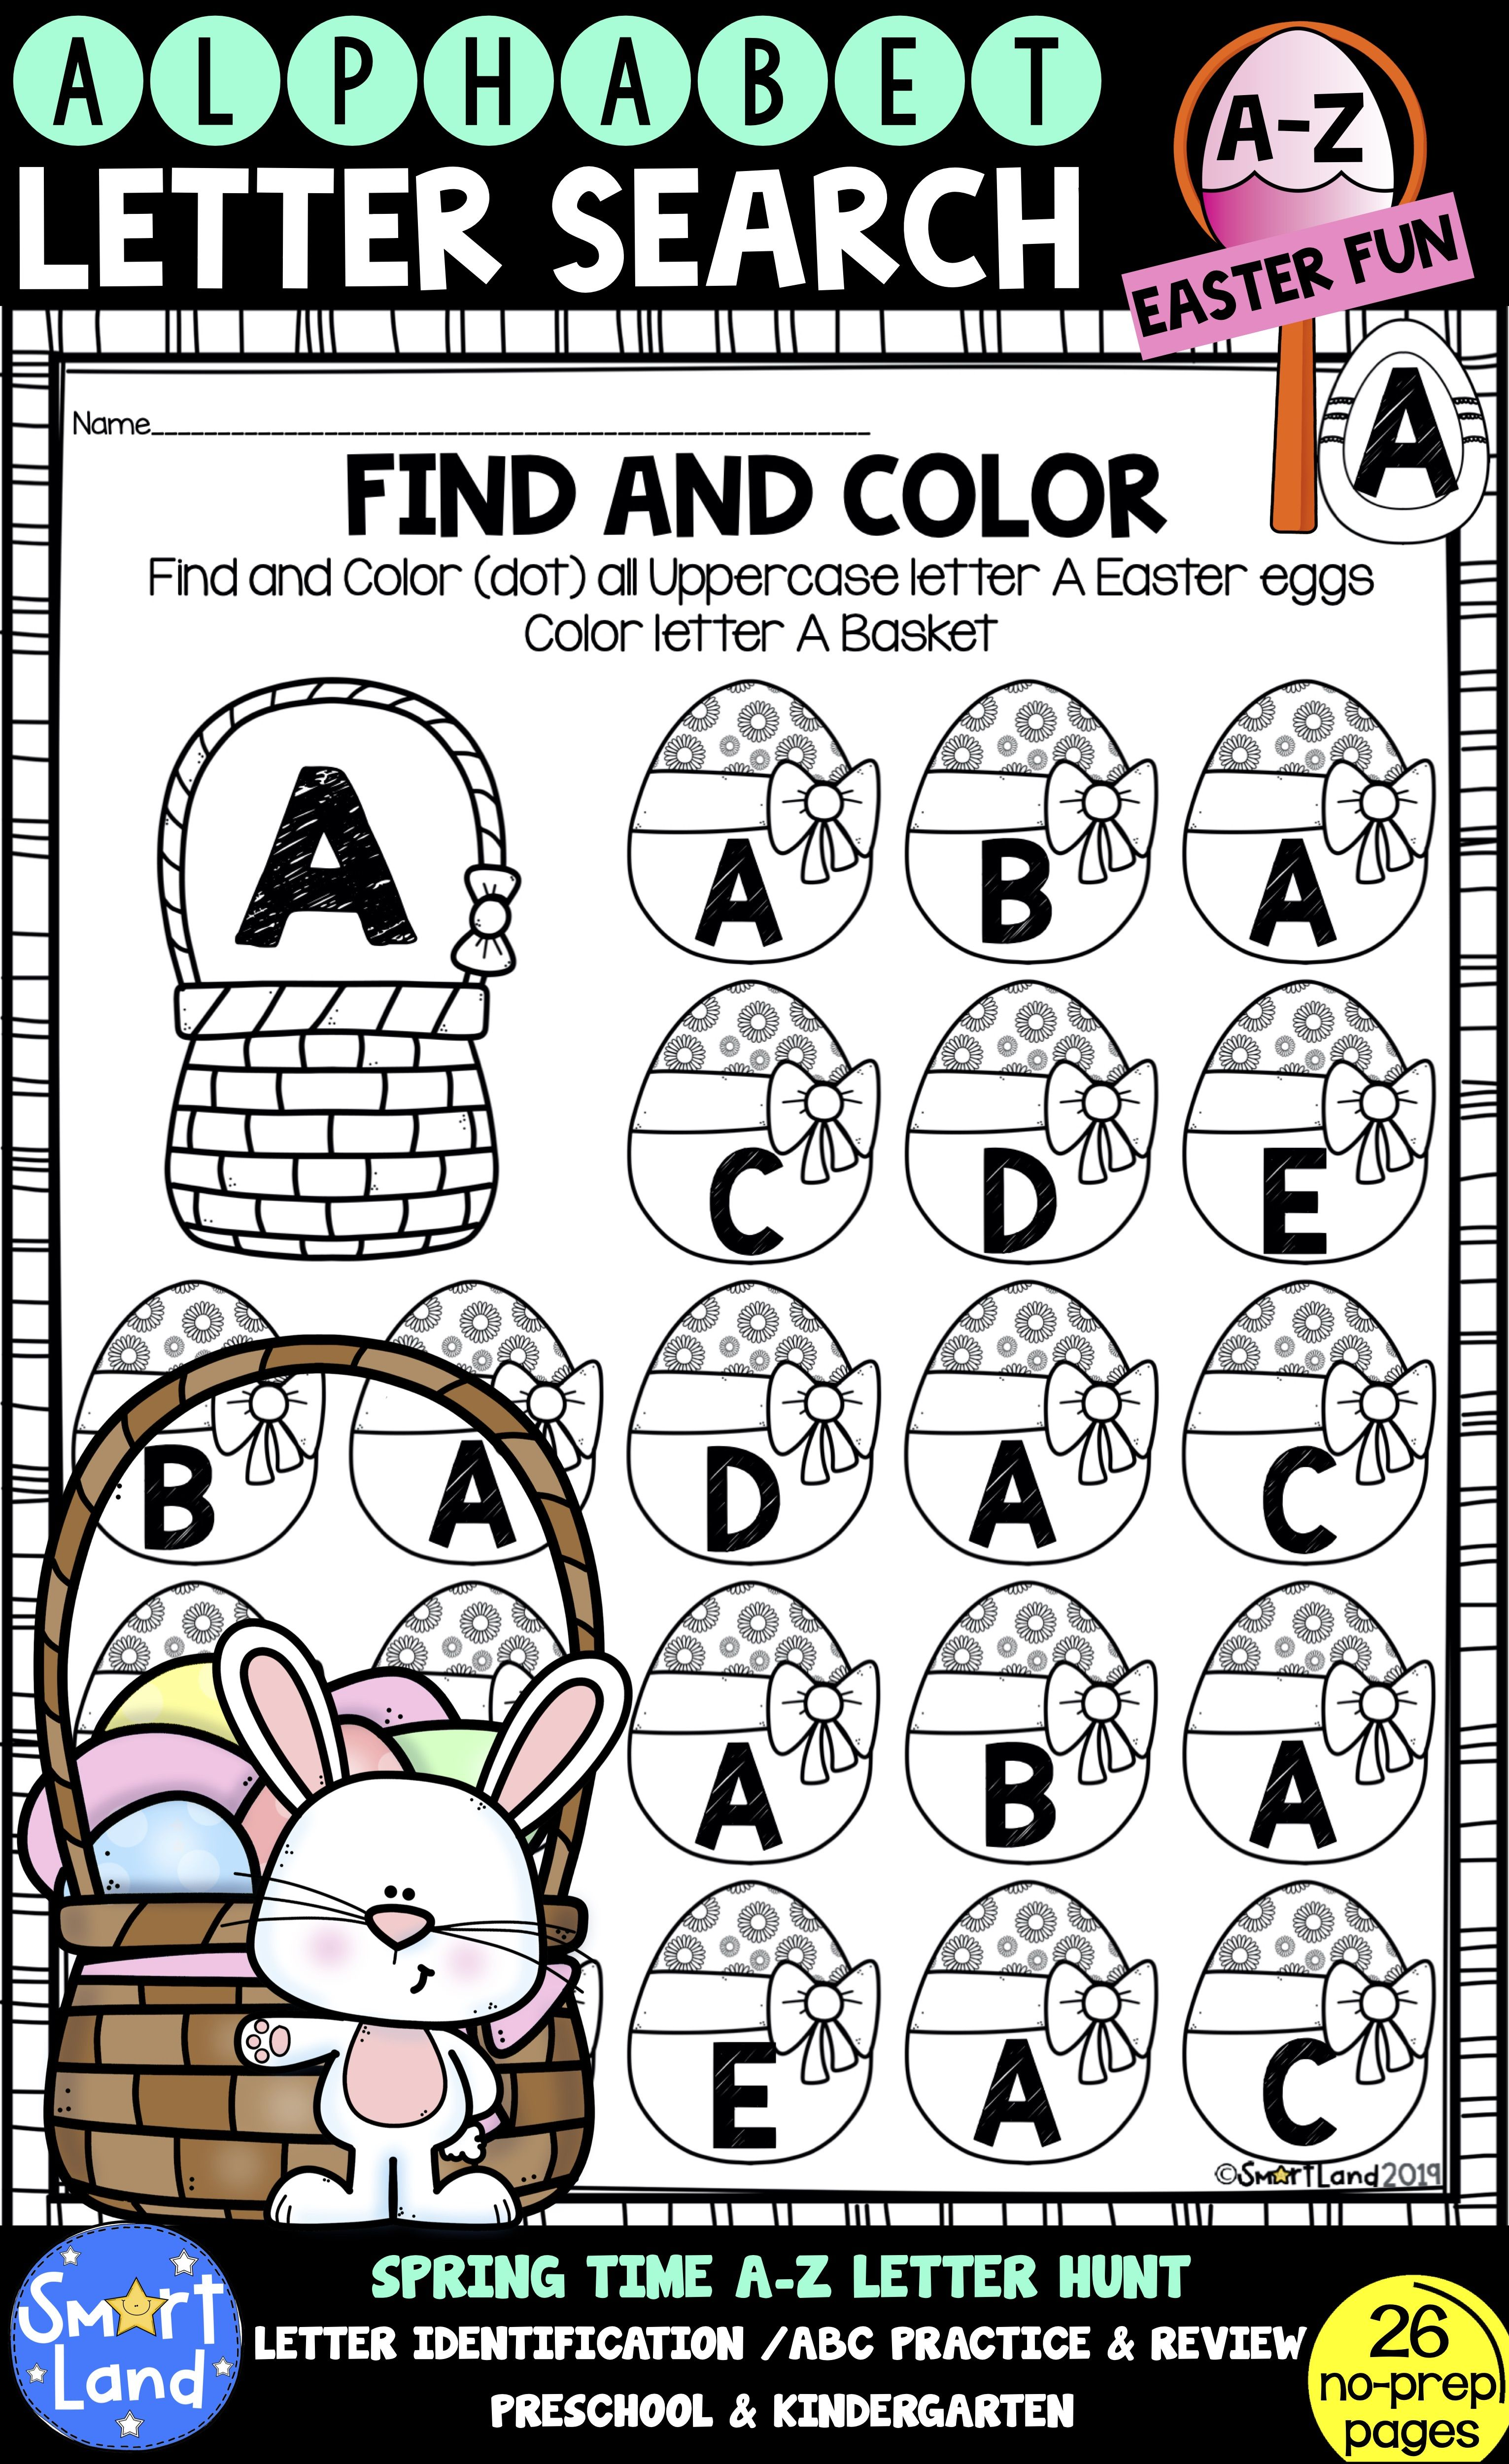 Alphabet Practice Letter Search Easter Eggs Alphabet Practice Free Lettering Letter Identification